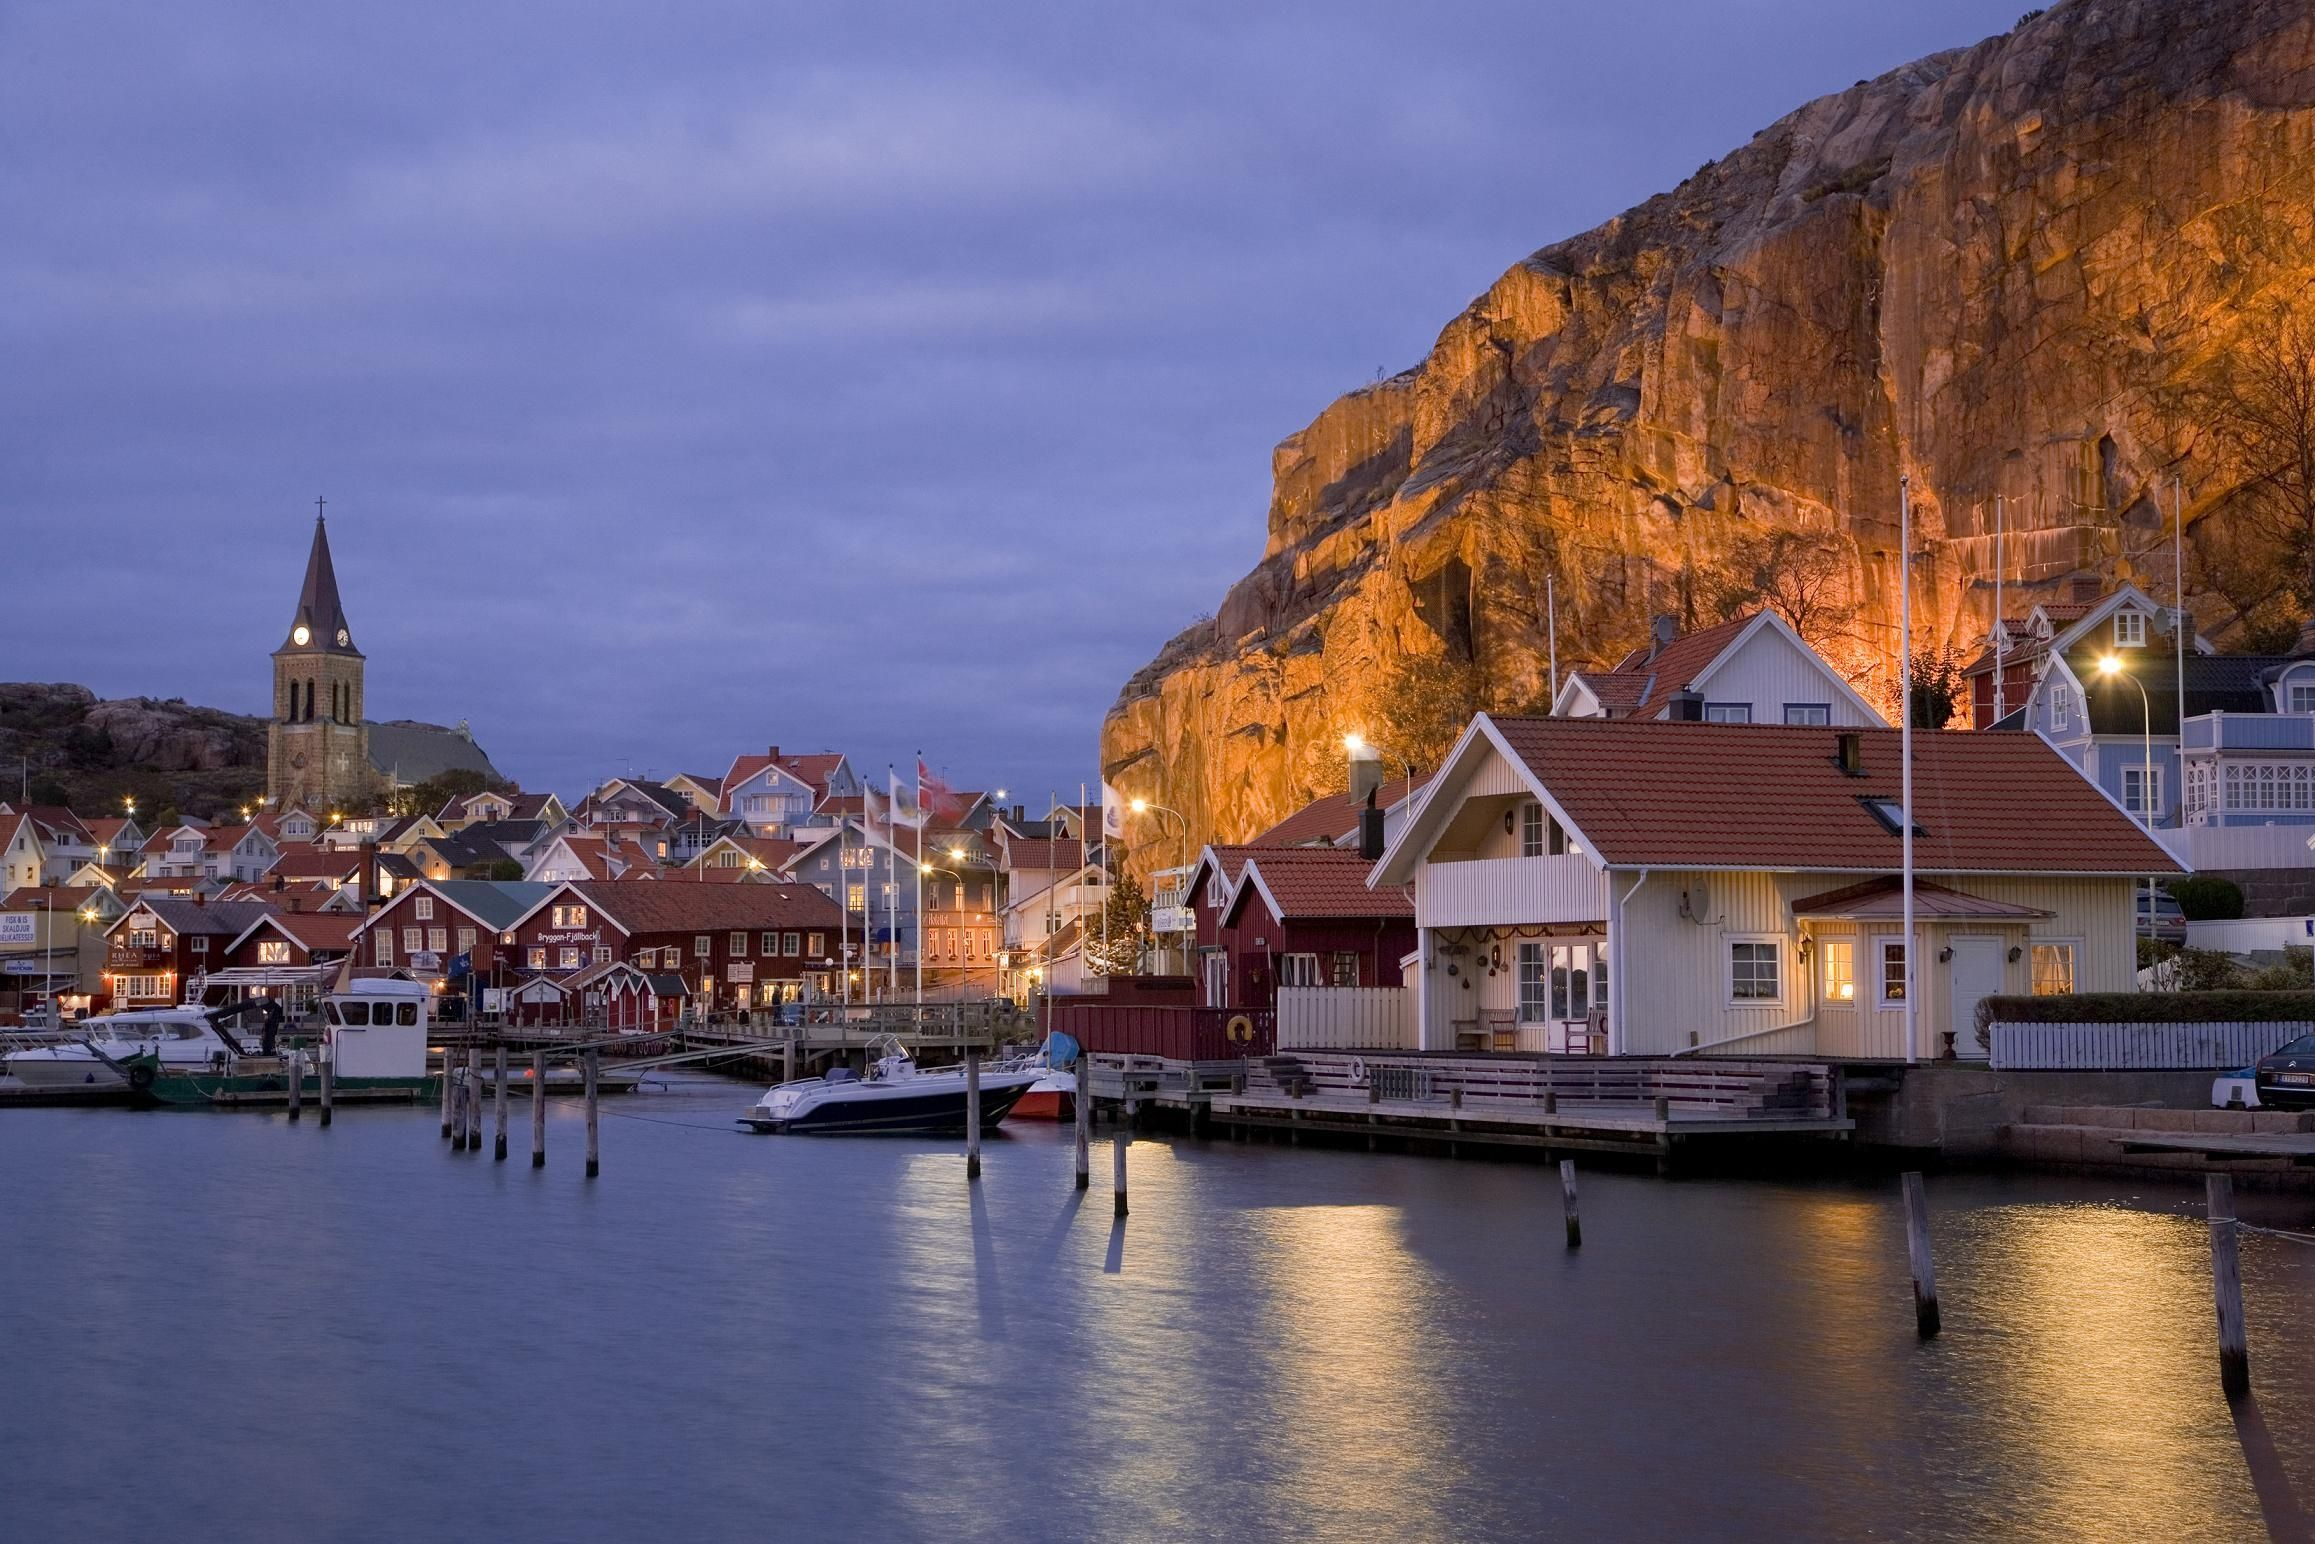 Relive Your Romance In Sweden Flights And Hotels Pinterest Sweden Camilla And Cool Wallpaper